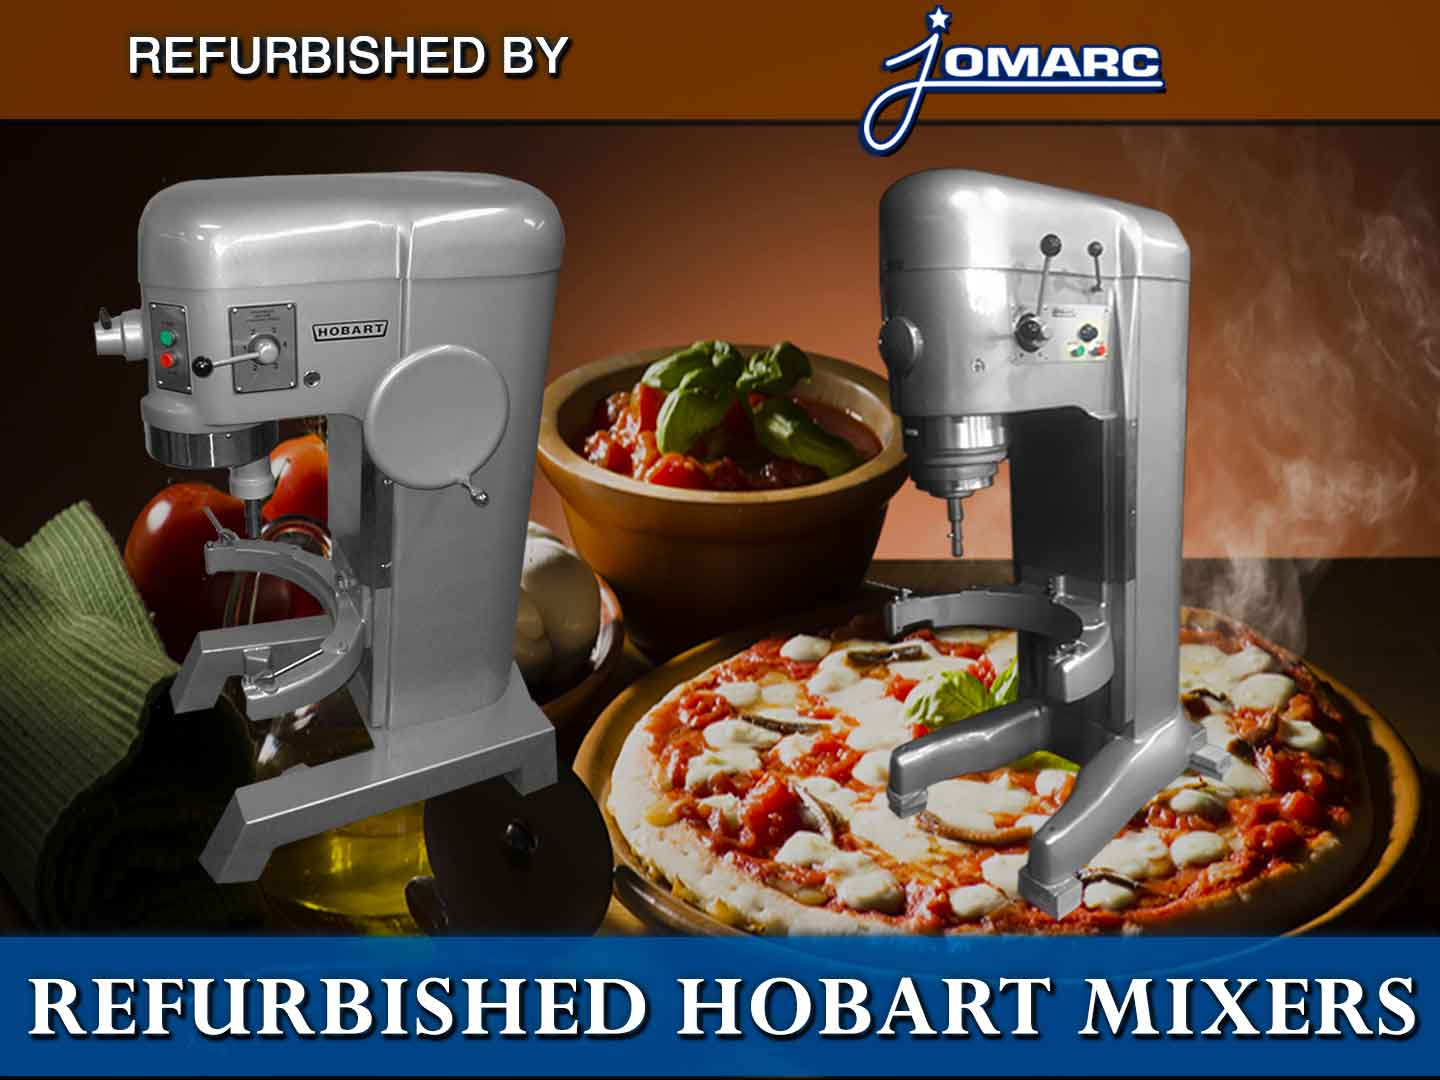 Save thousands by buying a refurbished mixer by Jomarc. Jomarc refurbishes used Hobart mixers to original factory finish. They are guaranteed and in pristine condition. We will ship to US, Canada, Quebec & France. Freight Shipping Rates added to price. Click here for more information